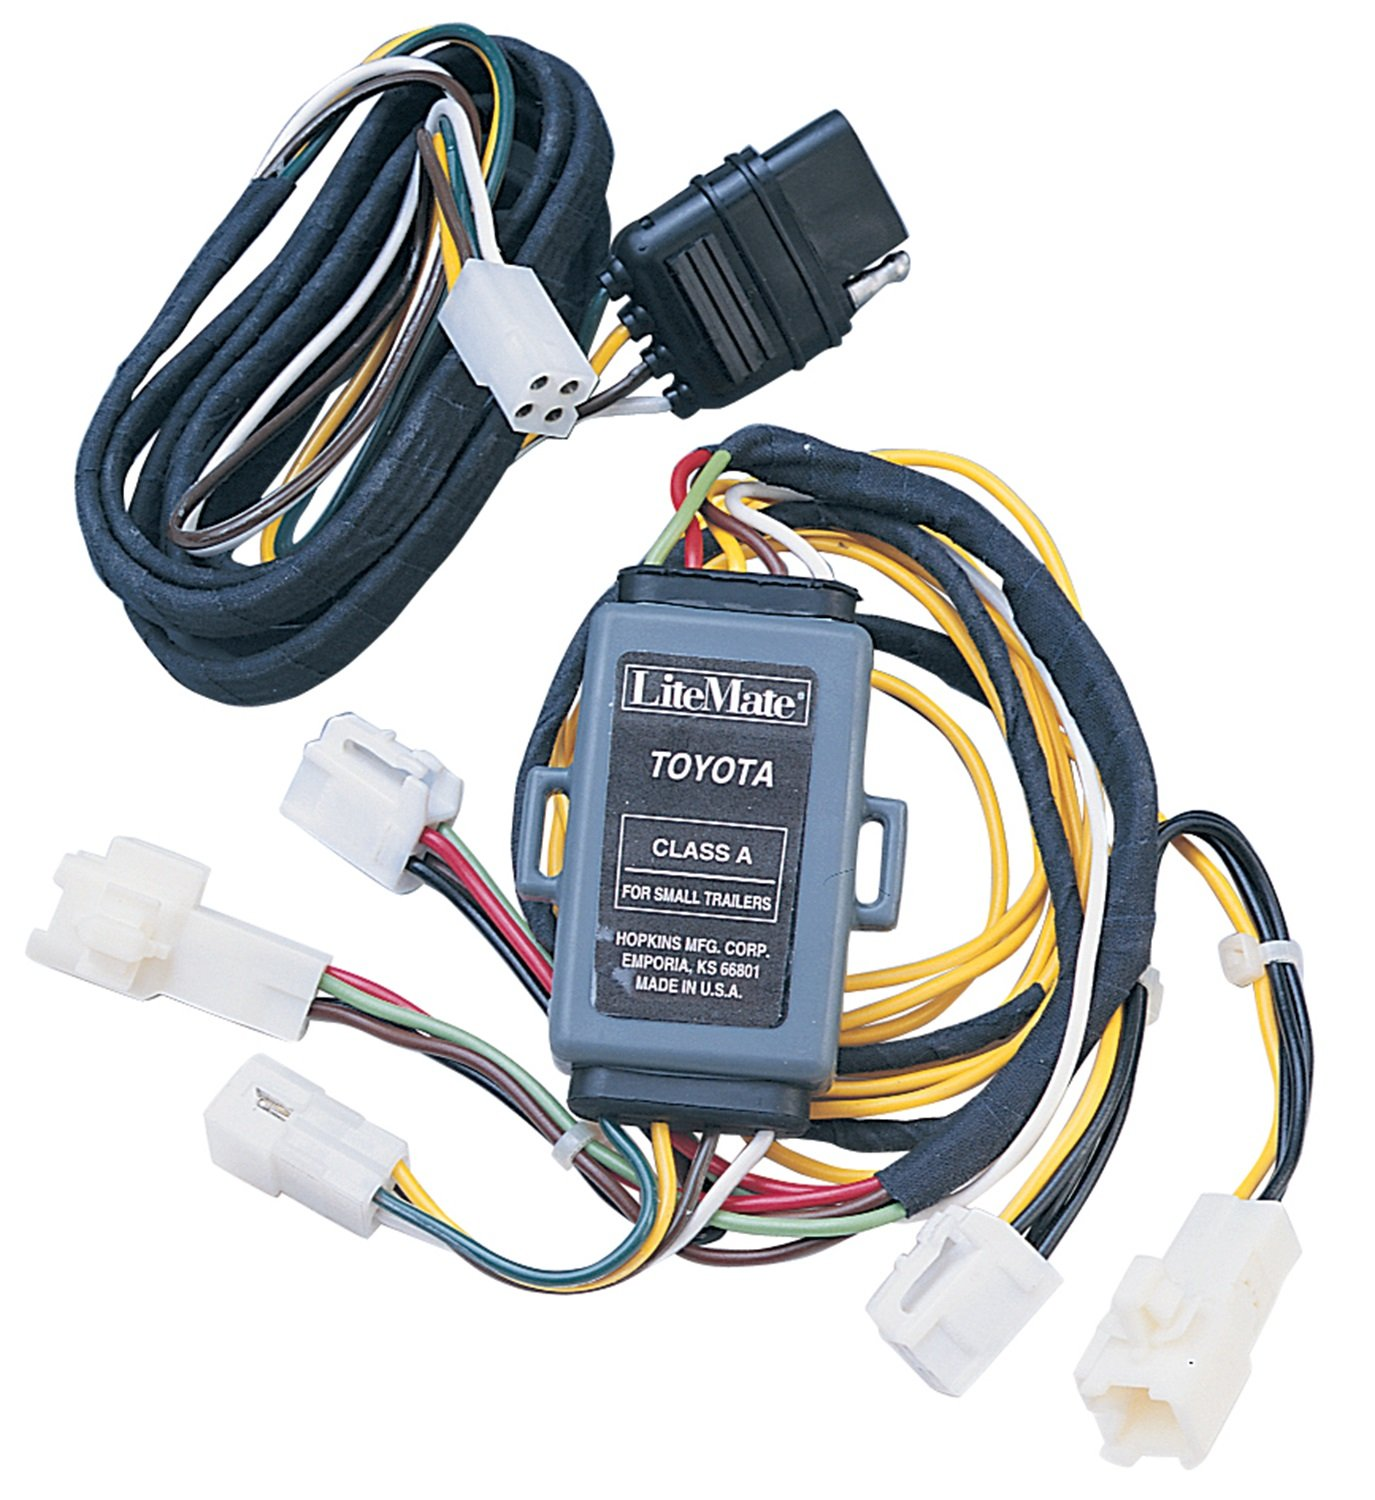 71qZ2WfkXgL._SL1500_ amazon com hopkins 11143405 plug in simple vehicle wiring kit 4 Prong Trailer Wiring Diagram at mifinder.co